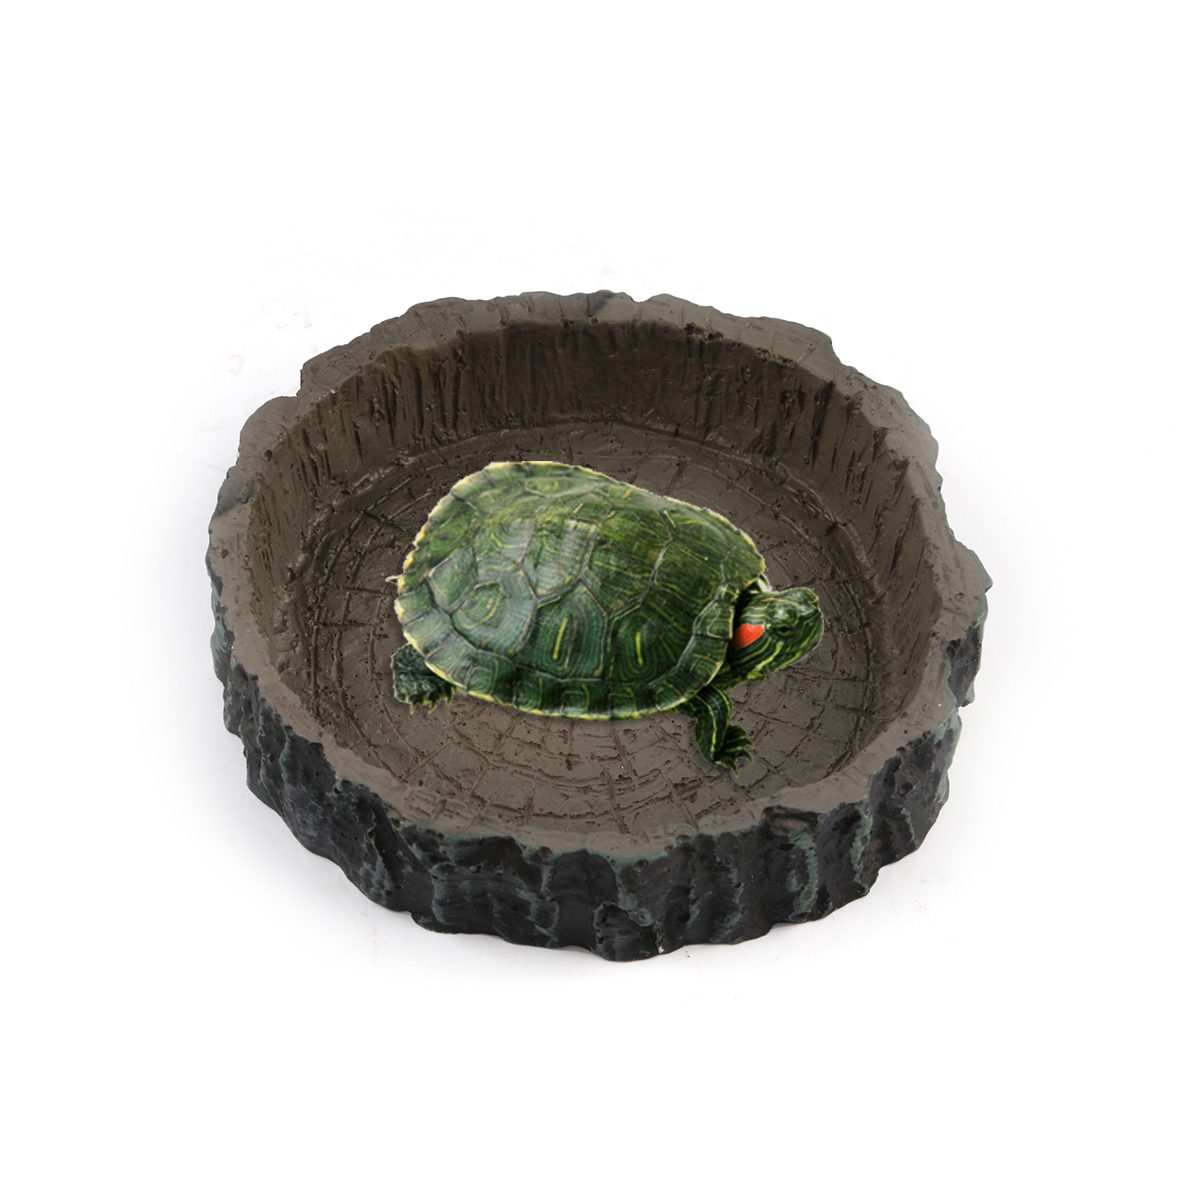 Round Shape Resin Reptile Bowl Water Food Dish Feeder Tortoise Turtle Feeding Tools Supplies For Amphibians Fish Tank Decoration